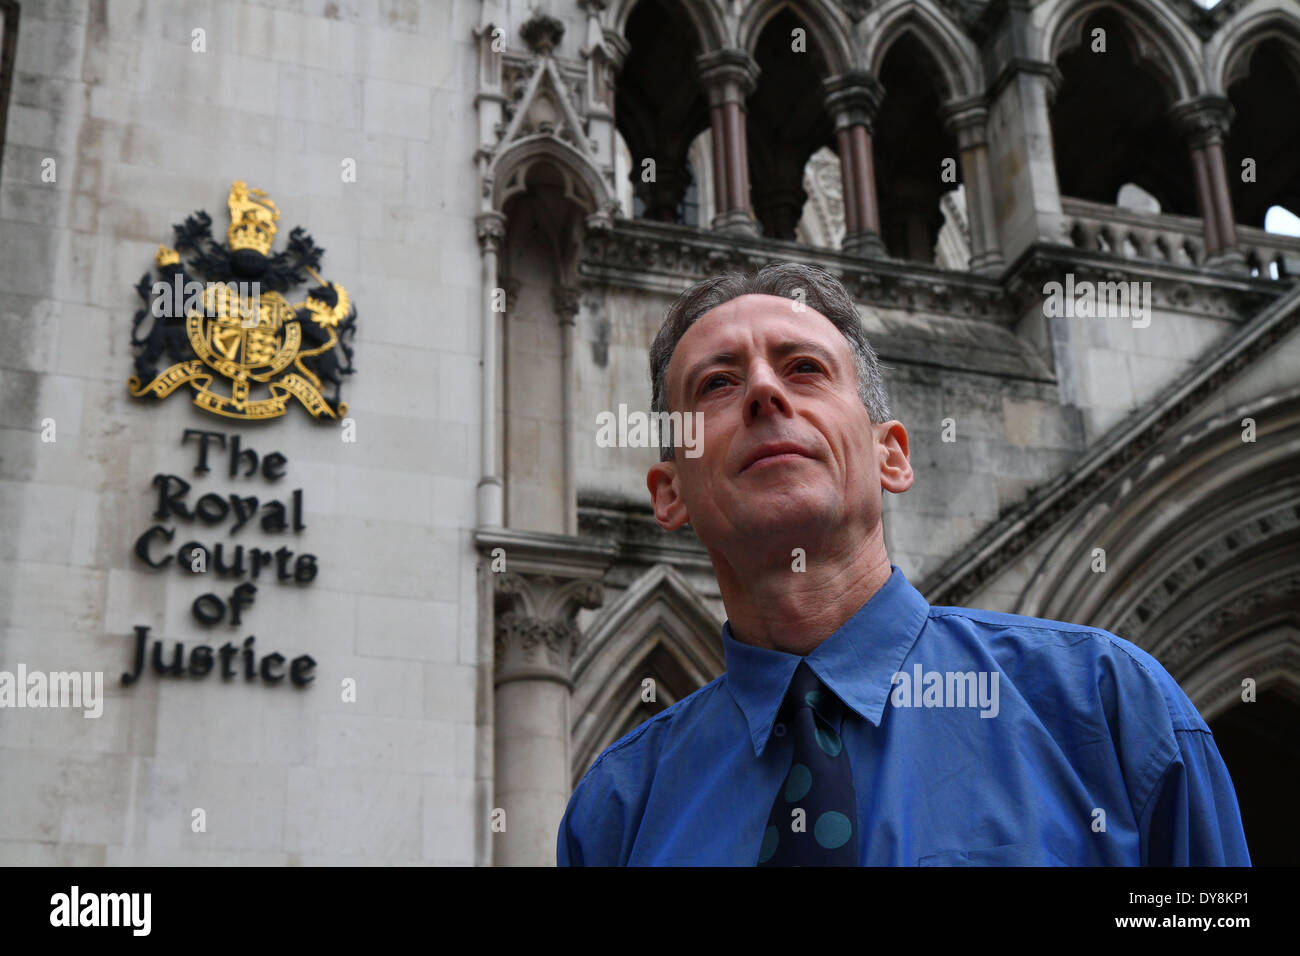 Peter Tatchell, Human Rights Campaigner, outside The Royal Courts of Justice in London, UK. - Stock Image